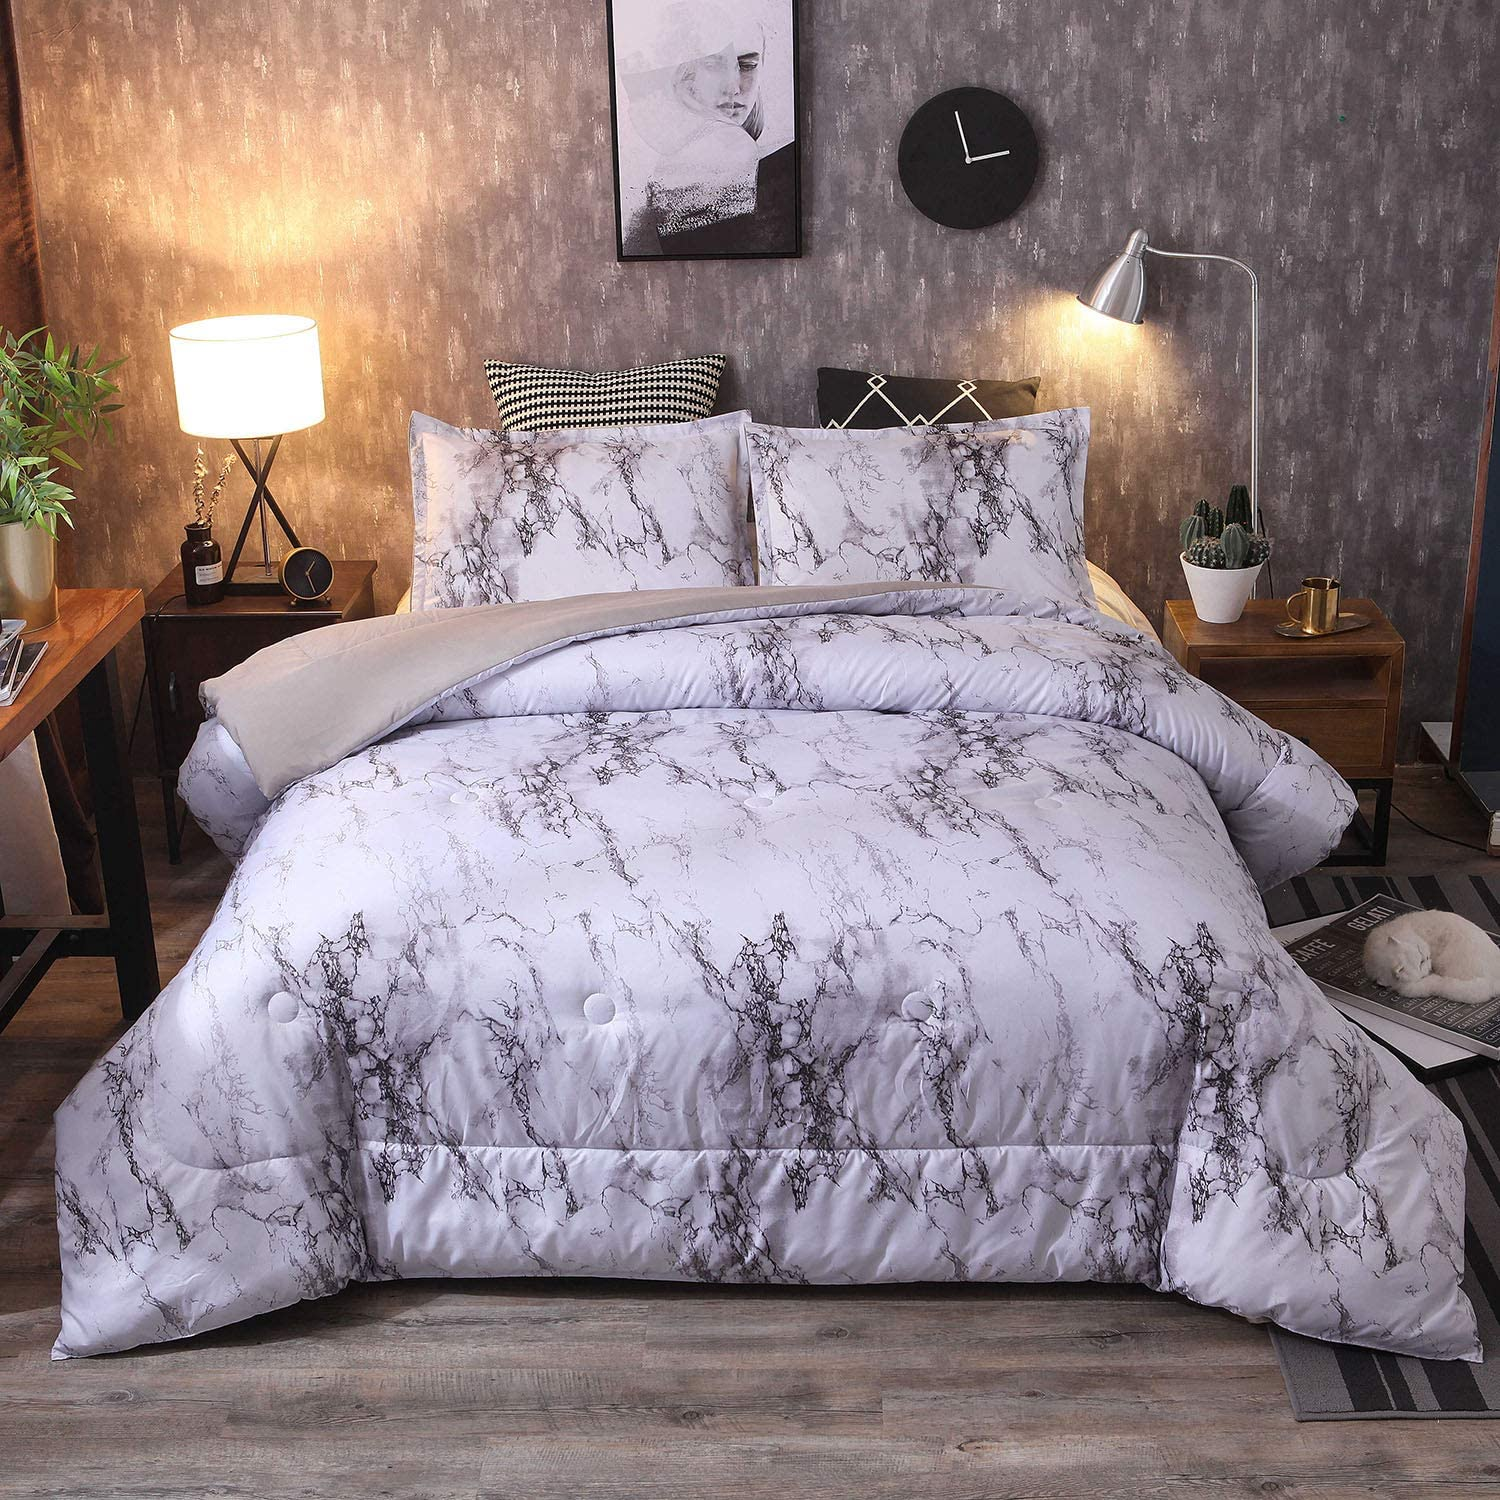 Sisher Queen Size Comforter Sets, White Marble Bedding Sets 9pcs Bed Sets  Quilt with 9 Matching Pillow Shams